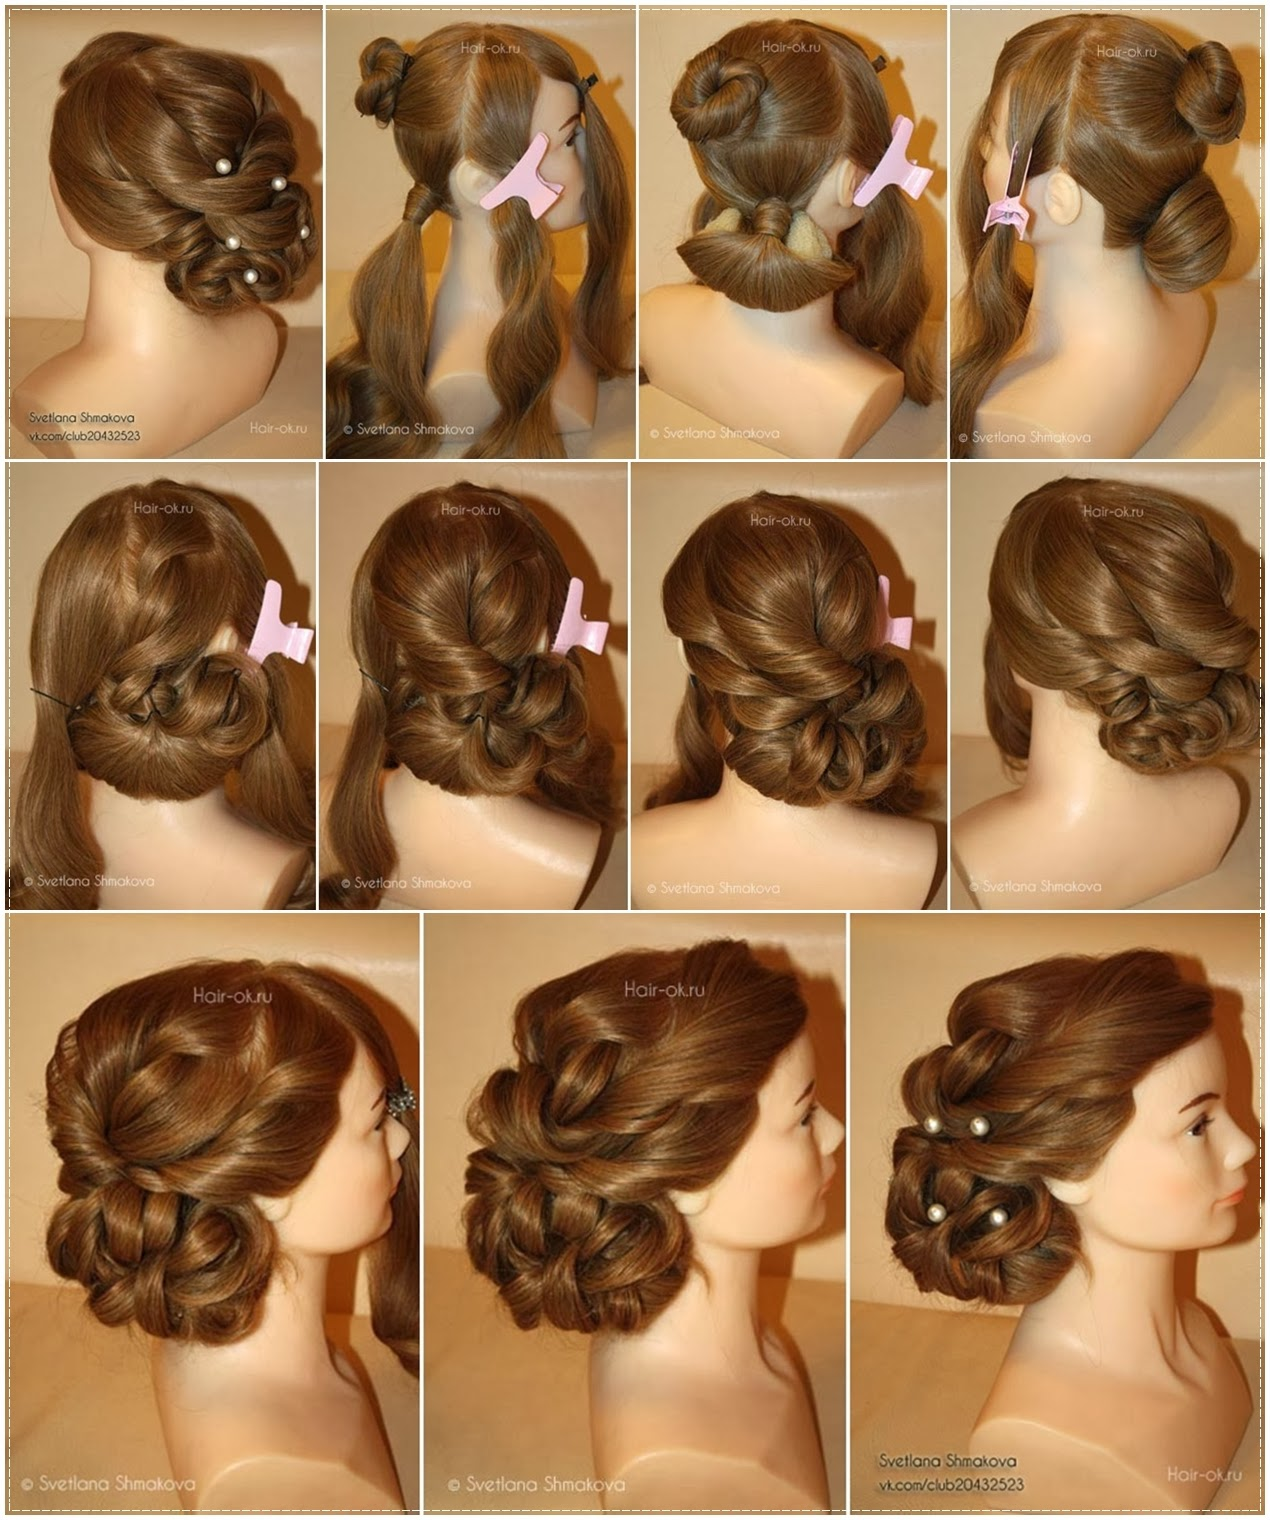 Holiday Updo Hairstyles Step by Step